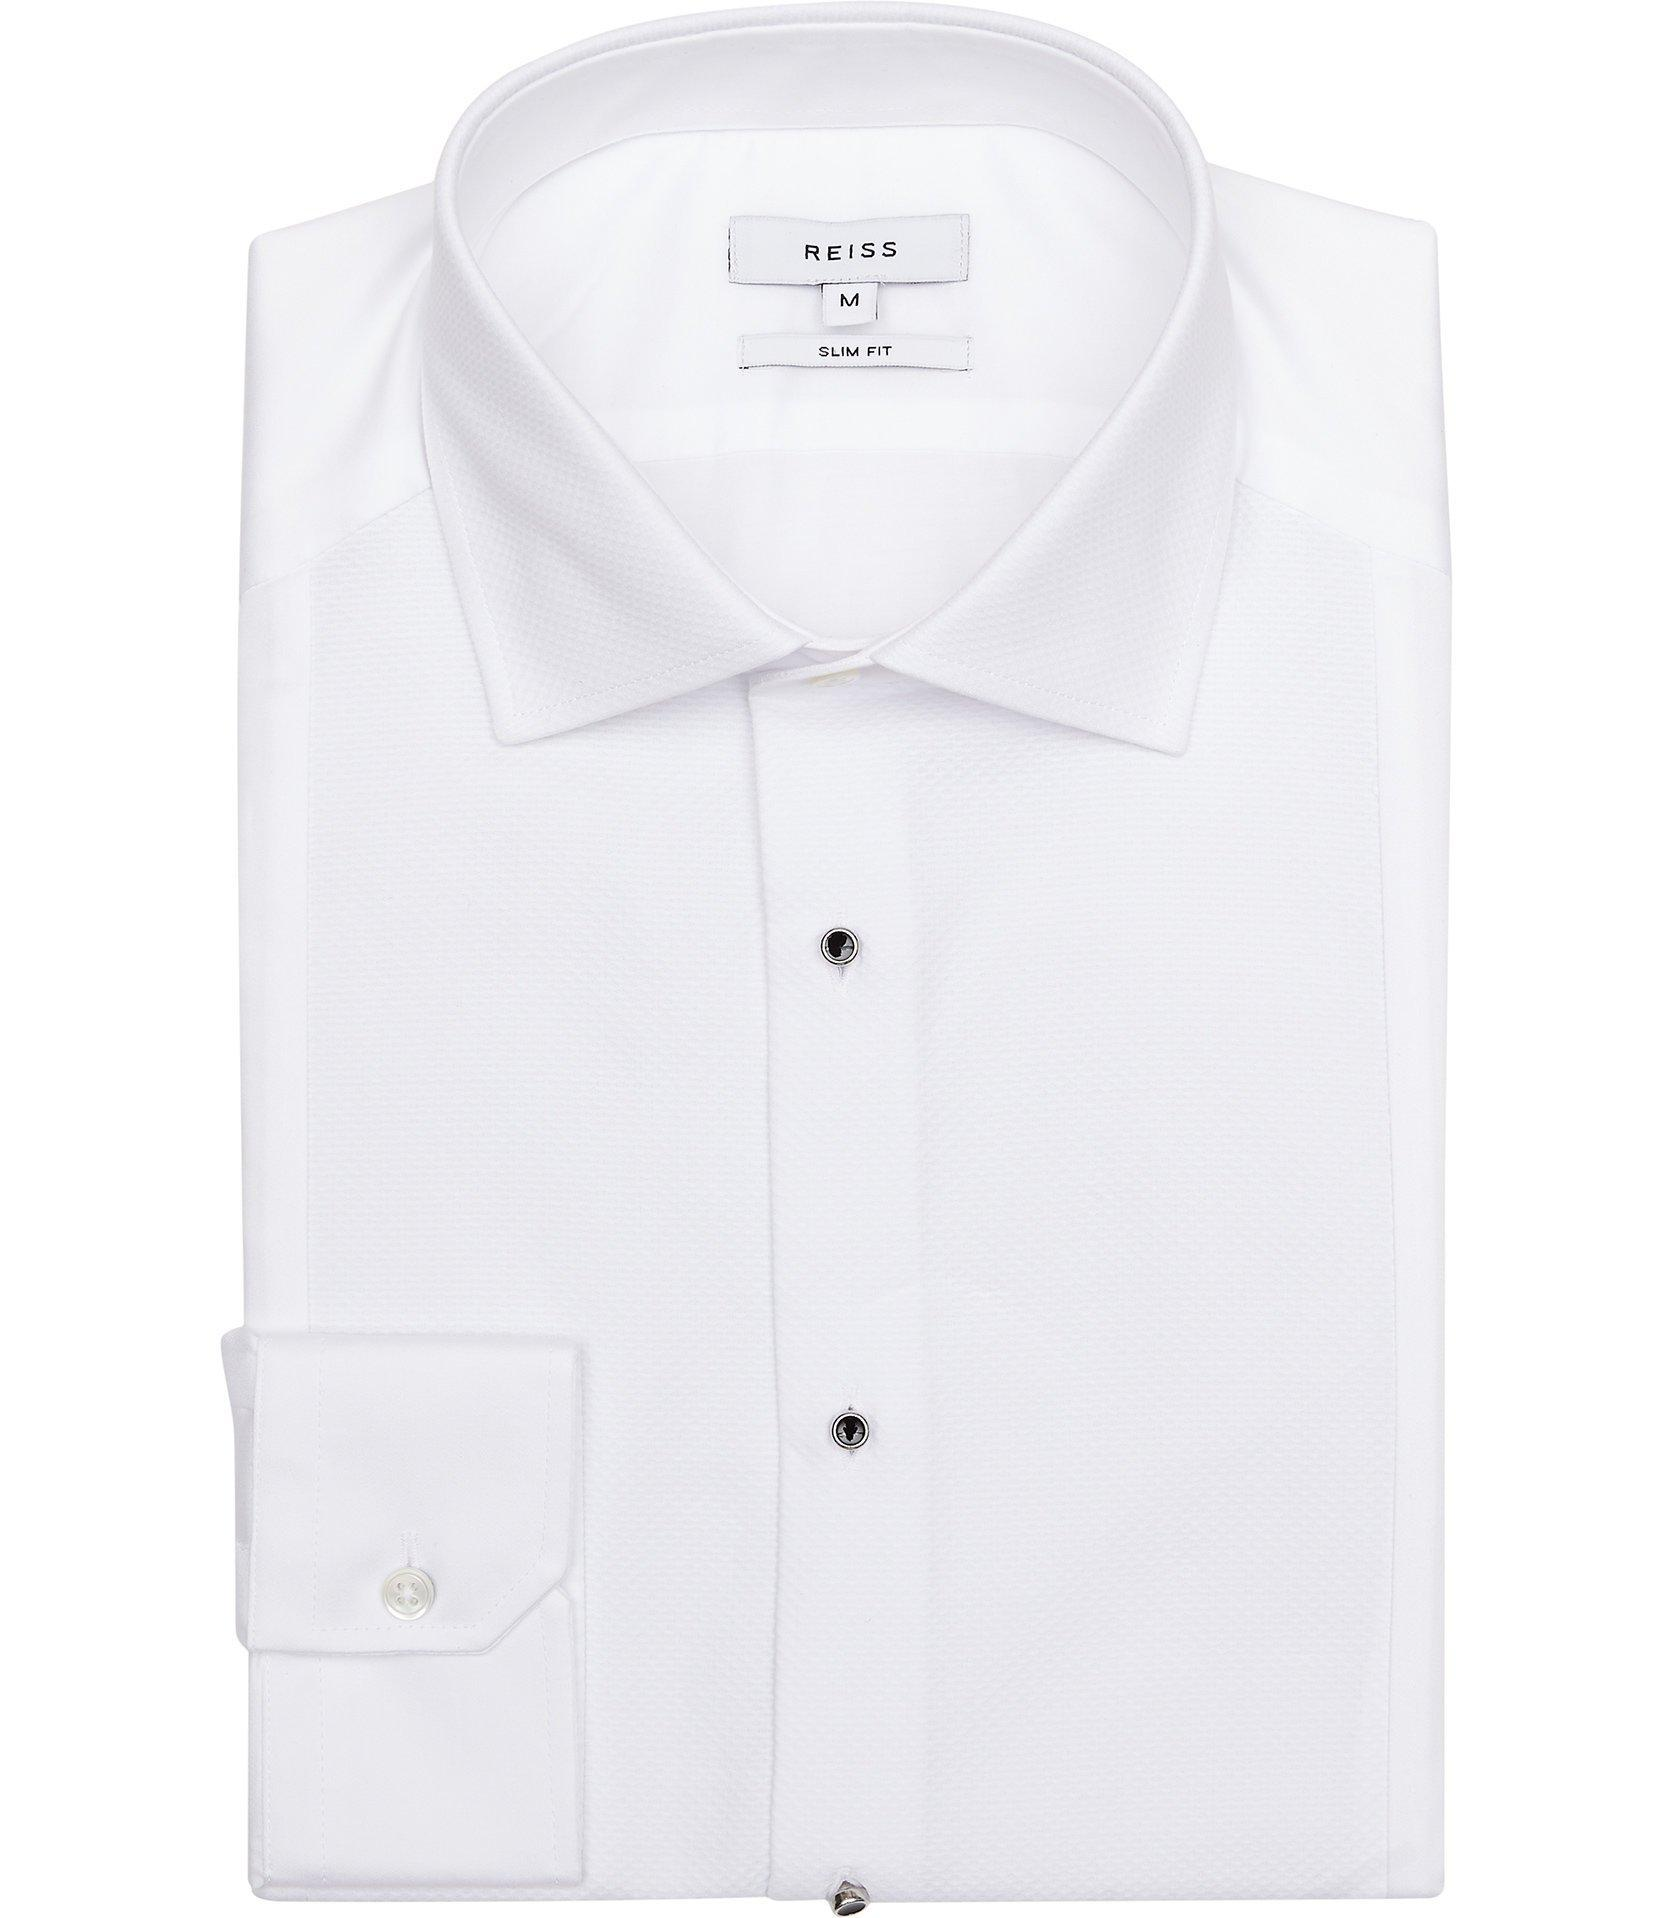 b699c2baa3 Reiss Marcel - Button-detail Slim-fit Shirt in White for Men - Lyst